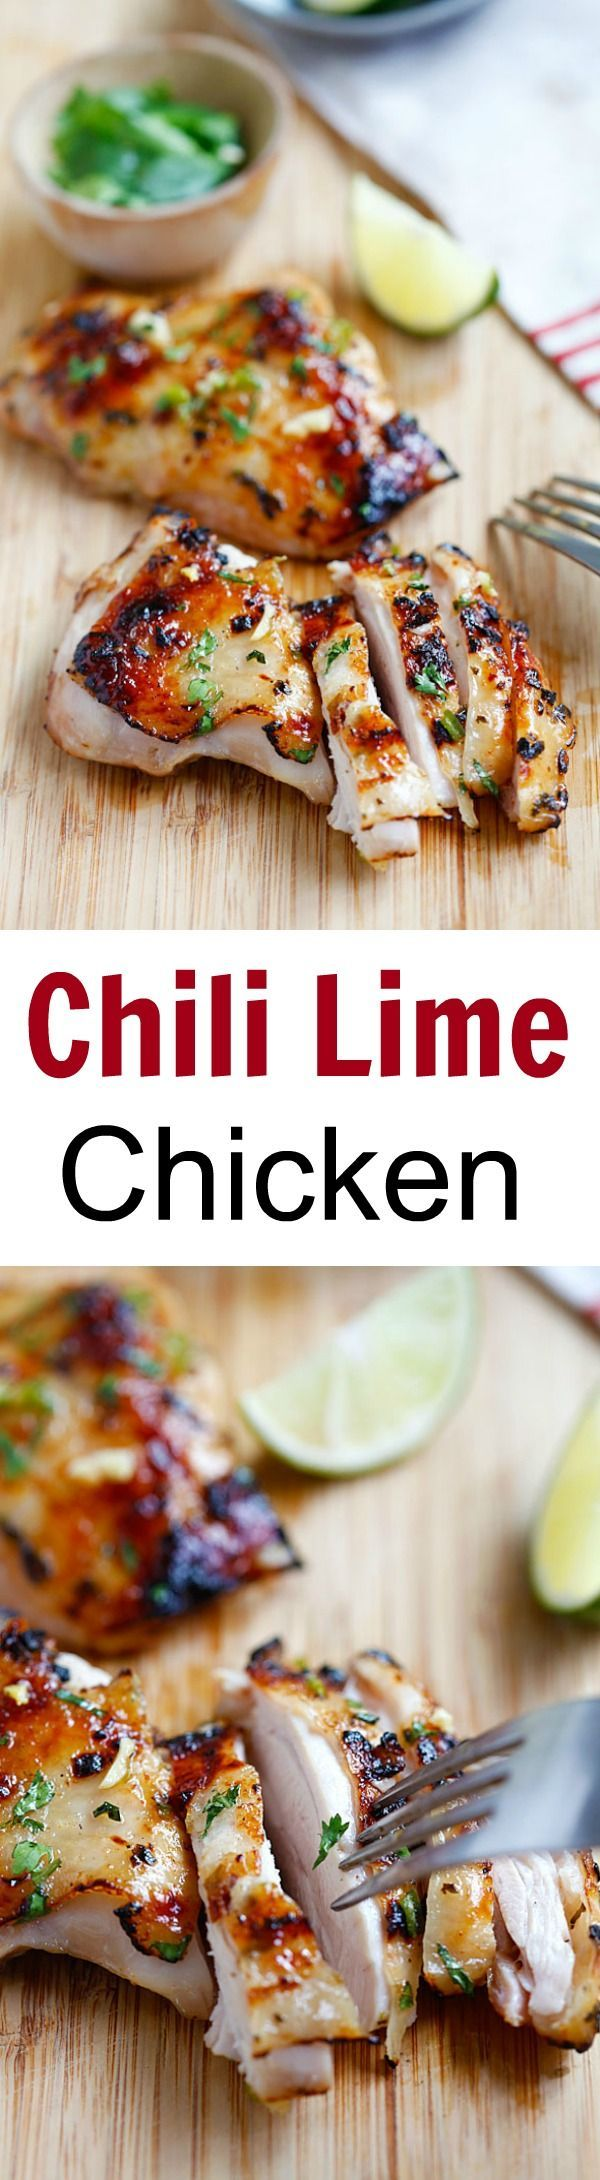 Chili lime chicken – moist and delicious chicken marinated with chili and lime and grill to perfection. Easy recipe that takes 30 mins   rasamalaysia.com